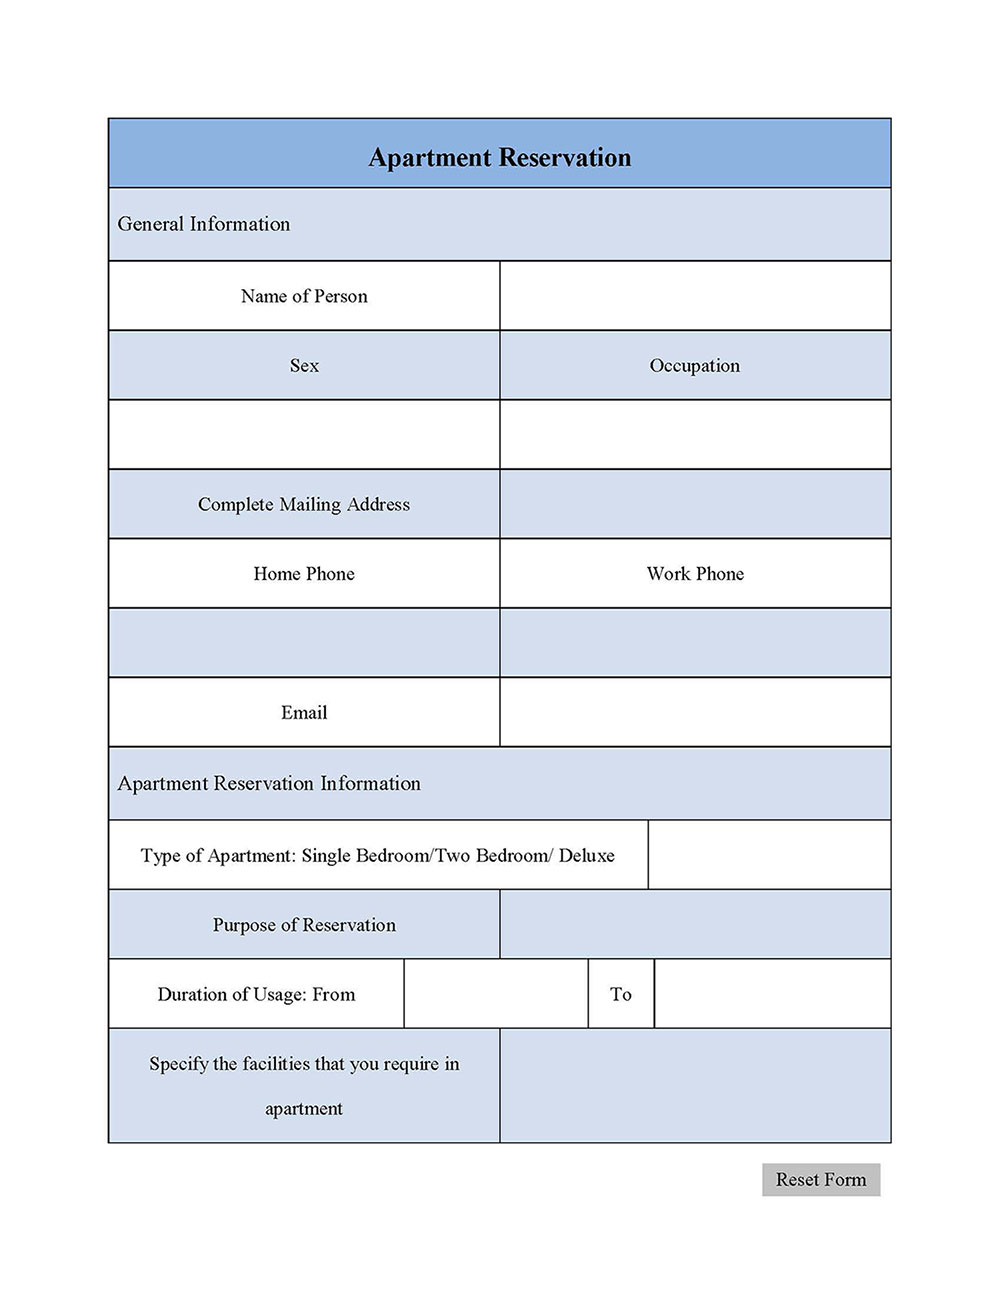 Apartment Reservation Form